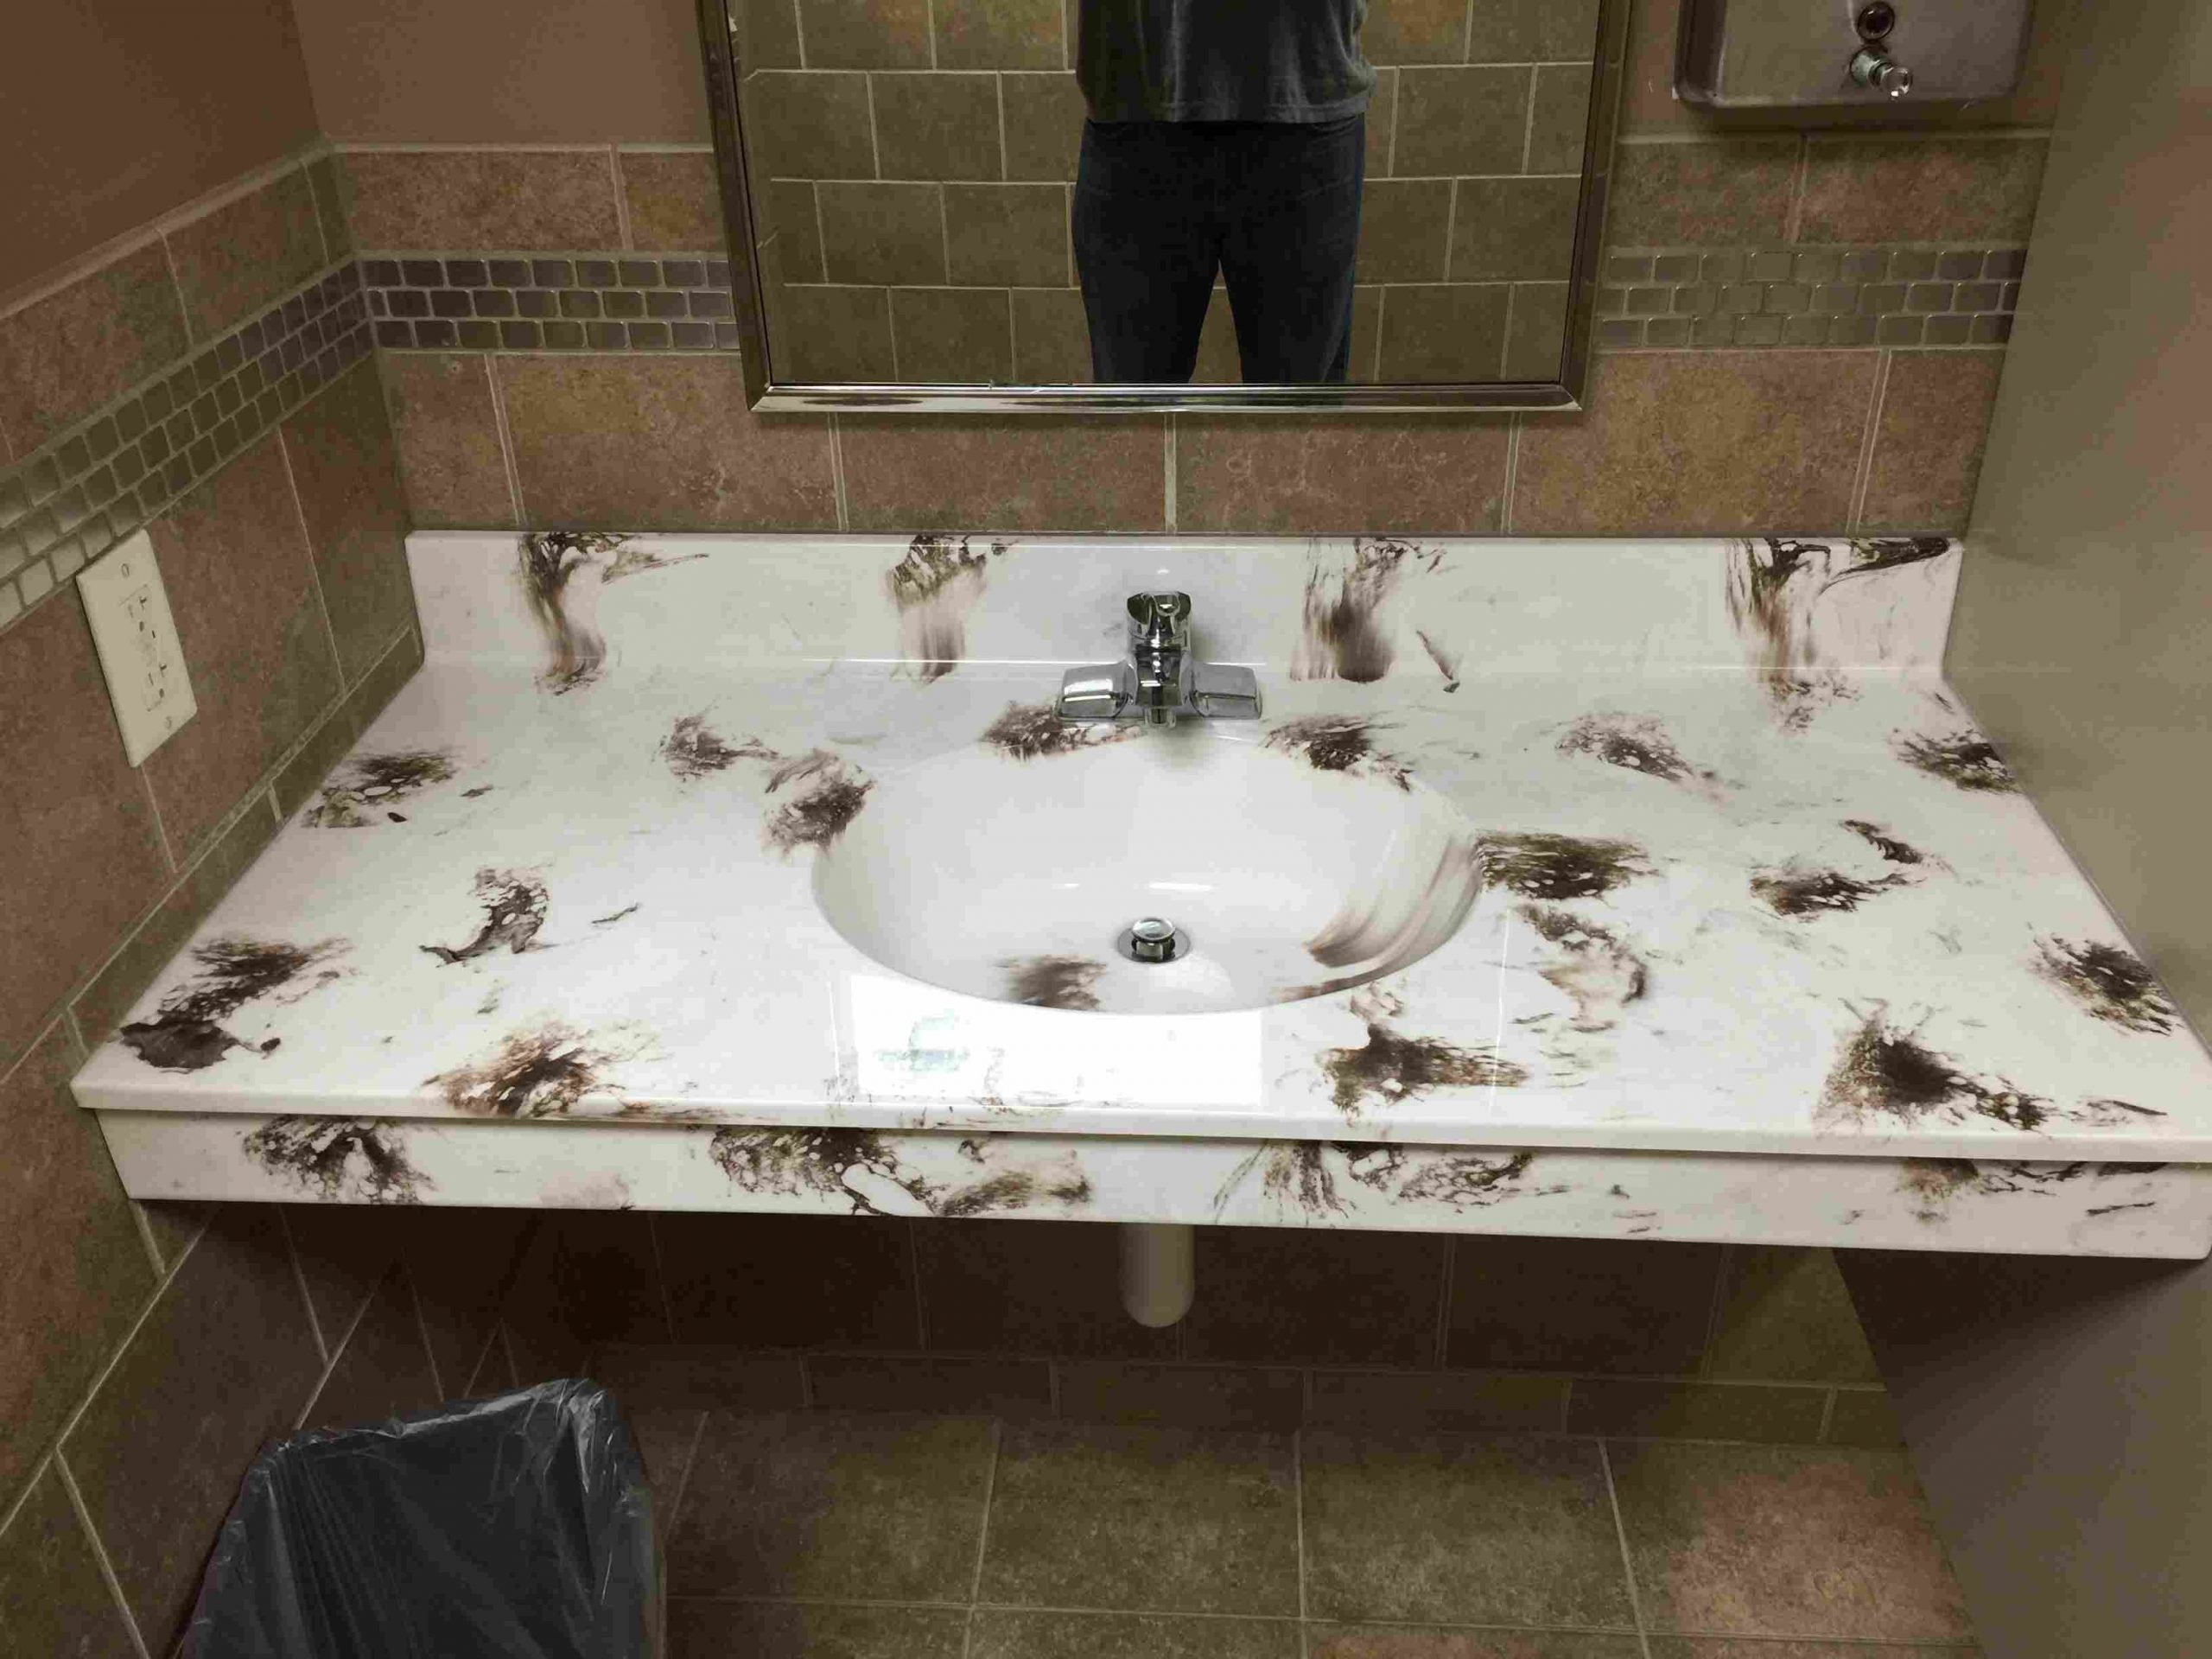 25 Bathroom Design Fails You Have To See To Believe Worst Bathroom Designs